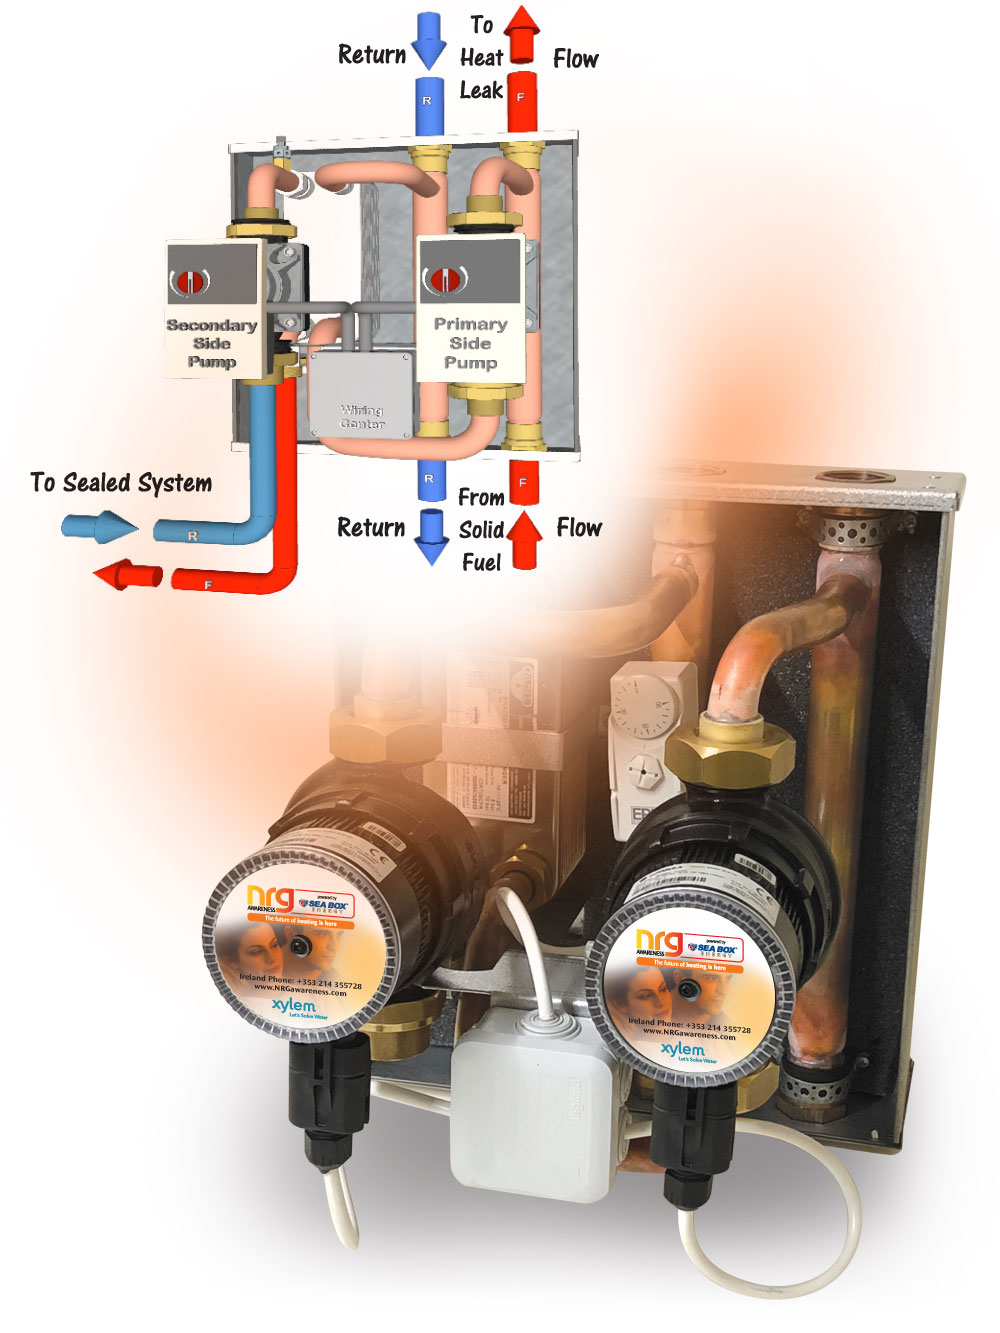 NRG Link - Interlinking Heating Solution